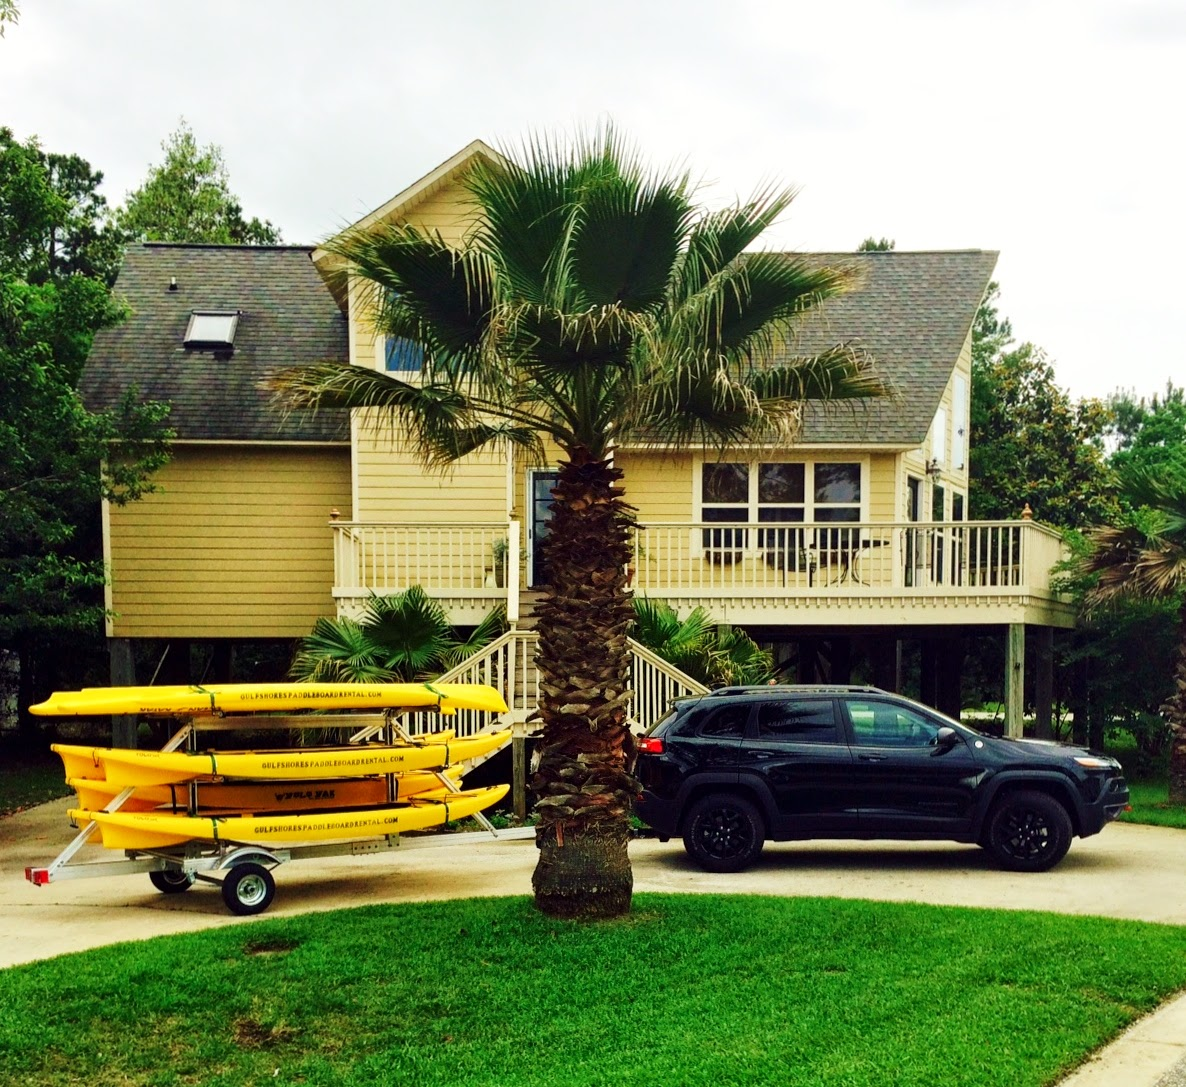 where to rent a paddleboard in Orange Beach, paddle board rental, kayak rental, daily and weekly rentals. Orange Beach, Alabama